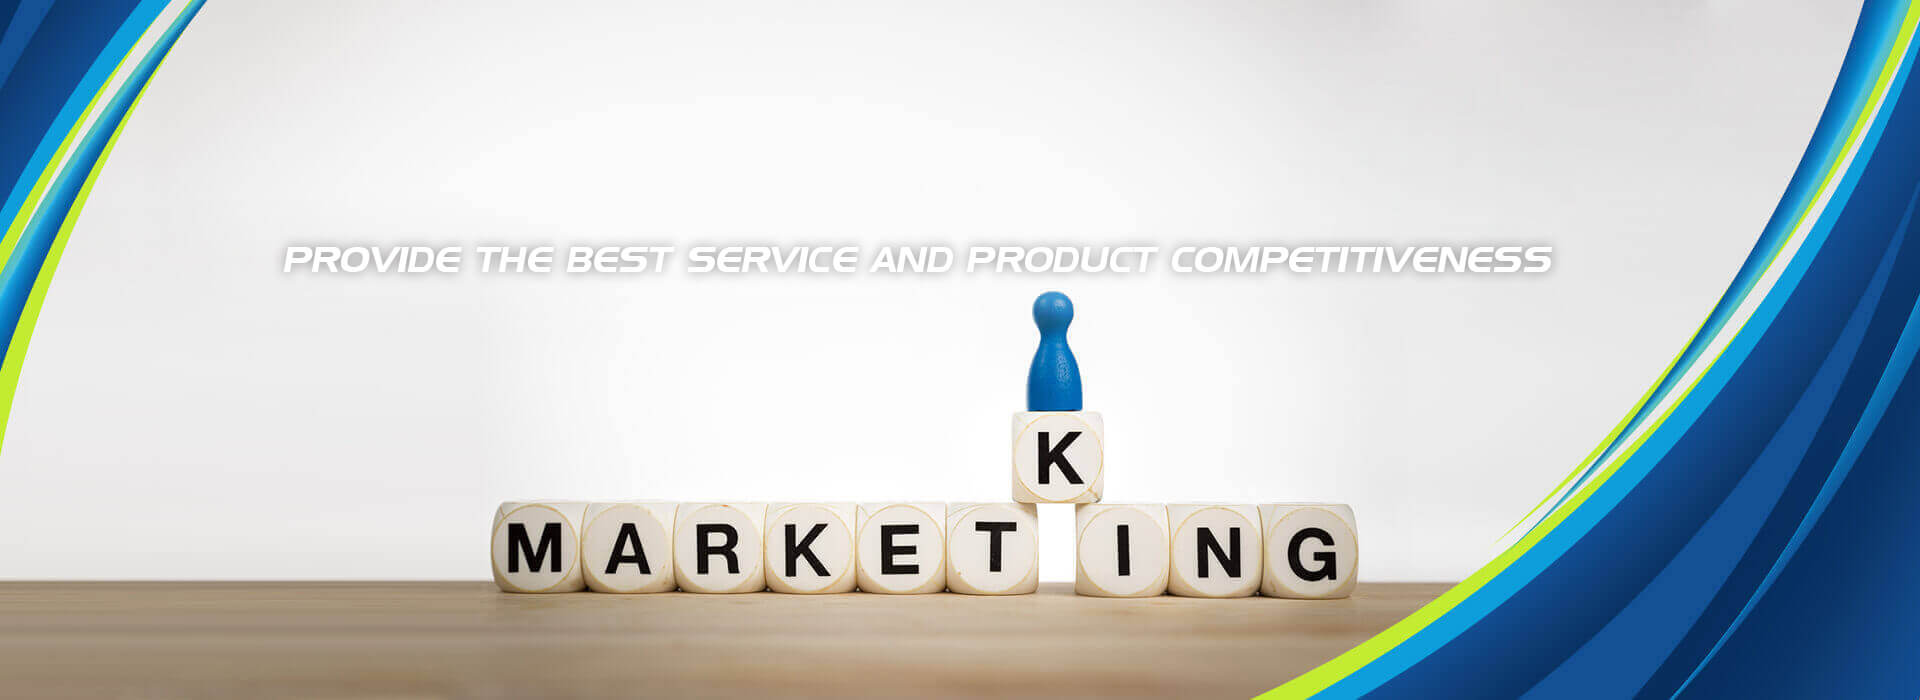 Provide The Best Service And Product Competitiveness